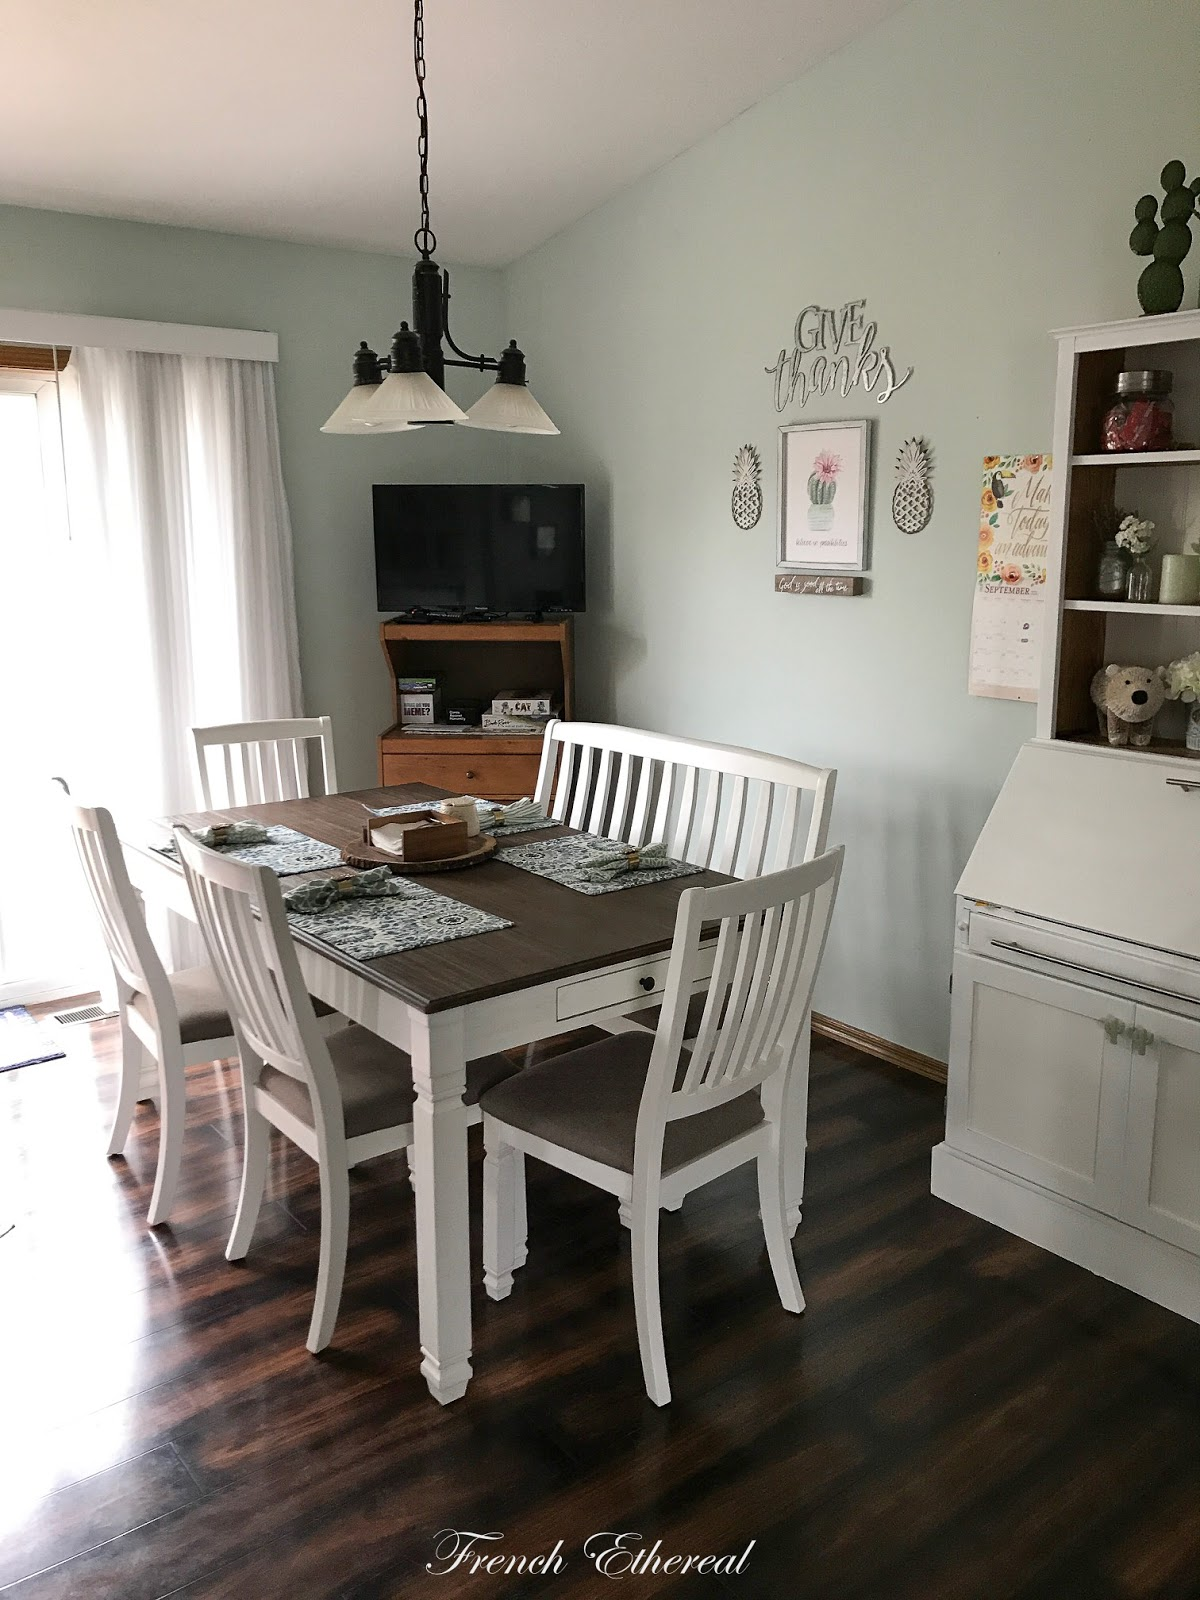 French ethereal elements of design transitional style - What is transitional style ...